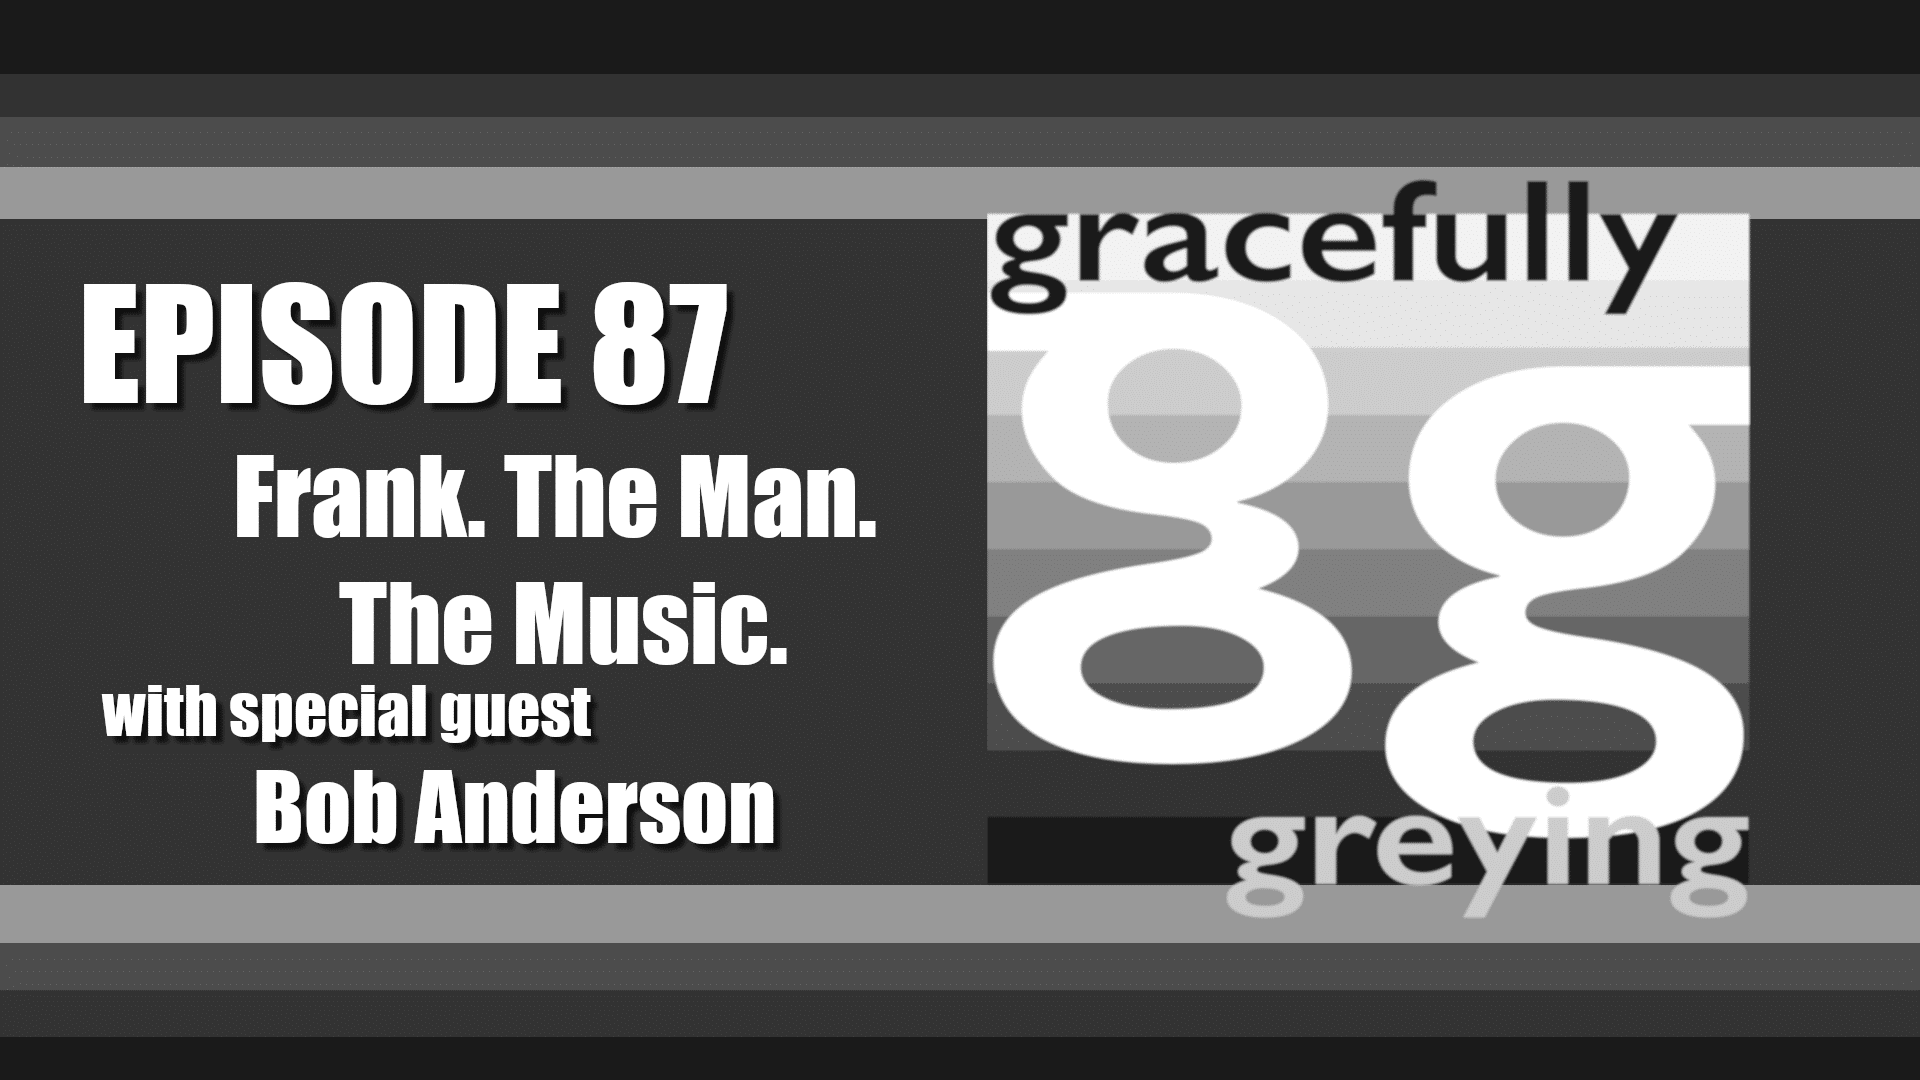 Gracefully Greying - Episode 87